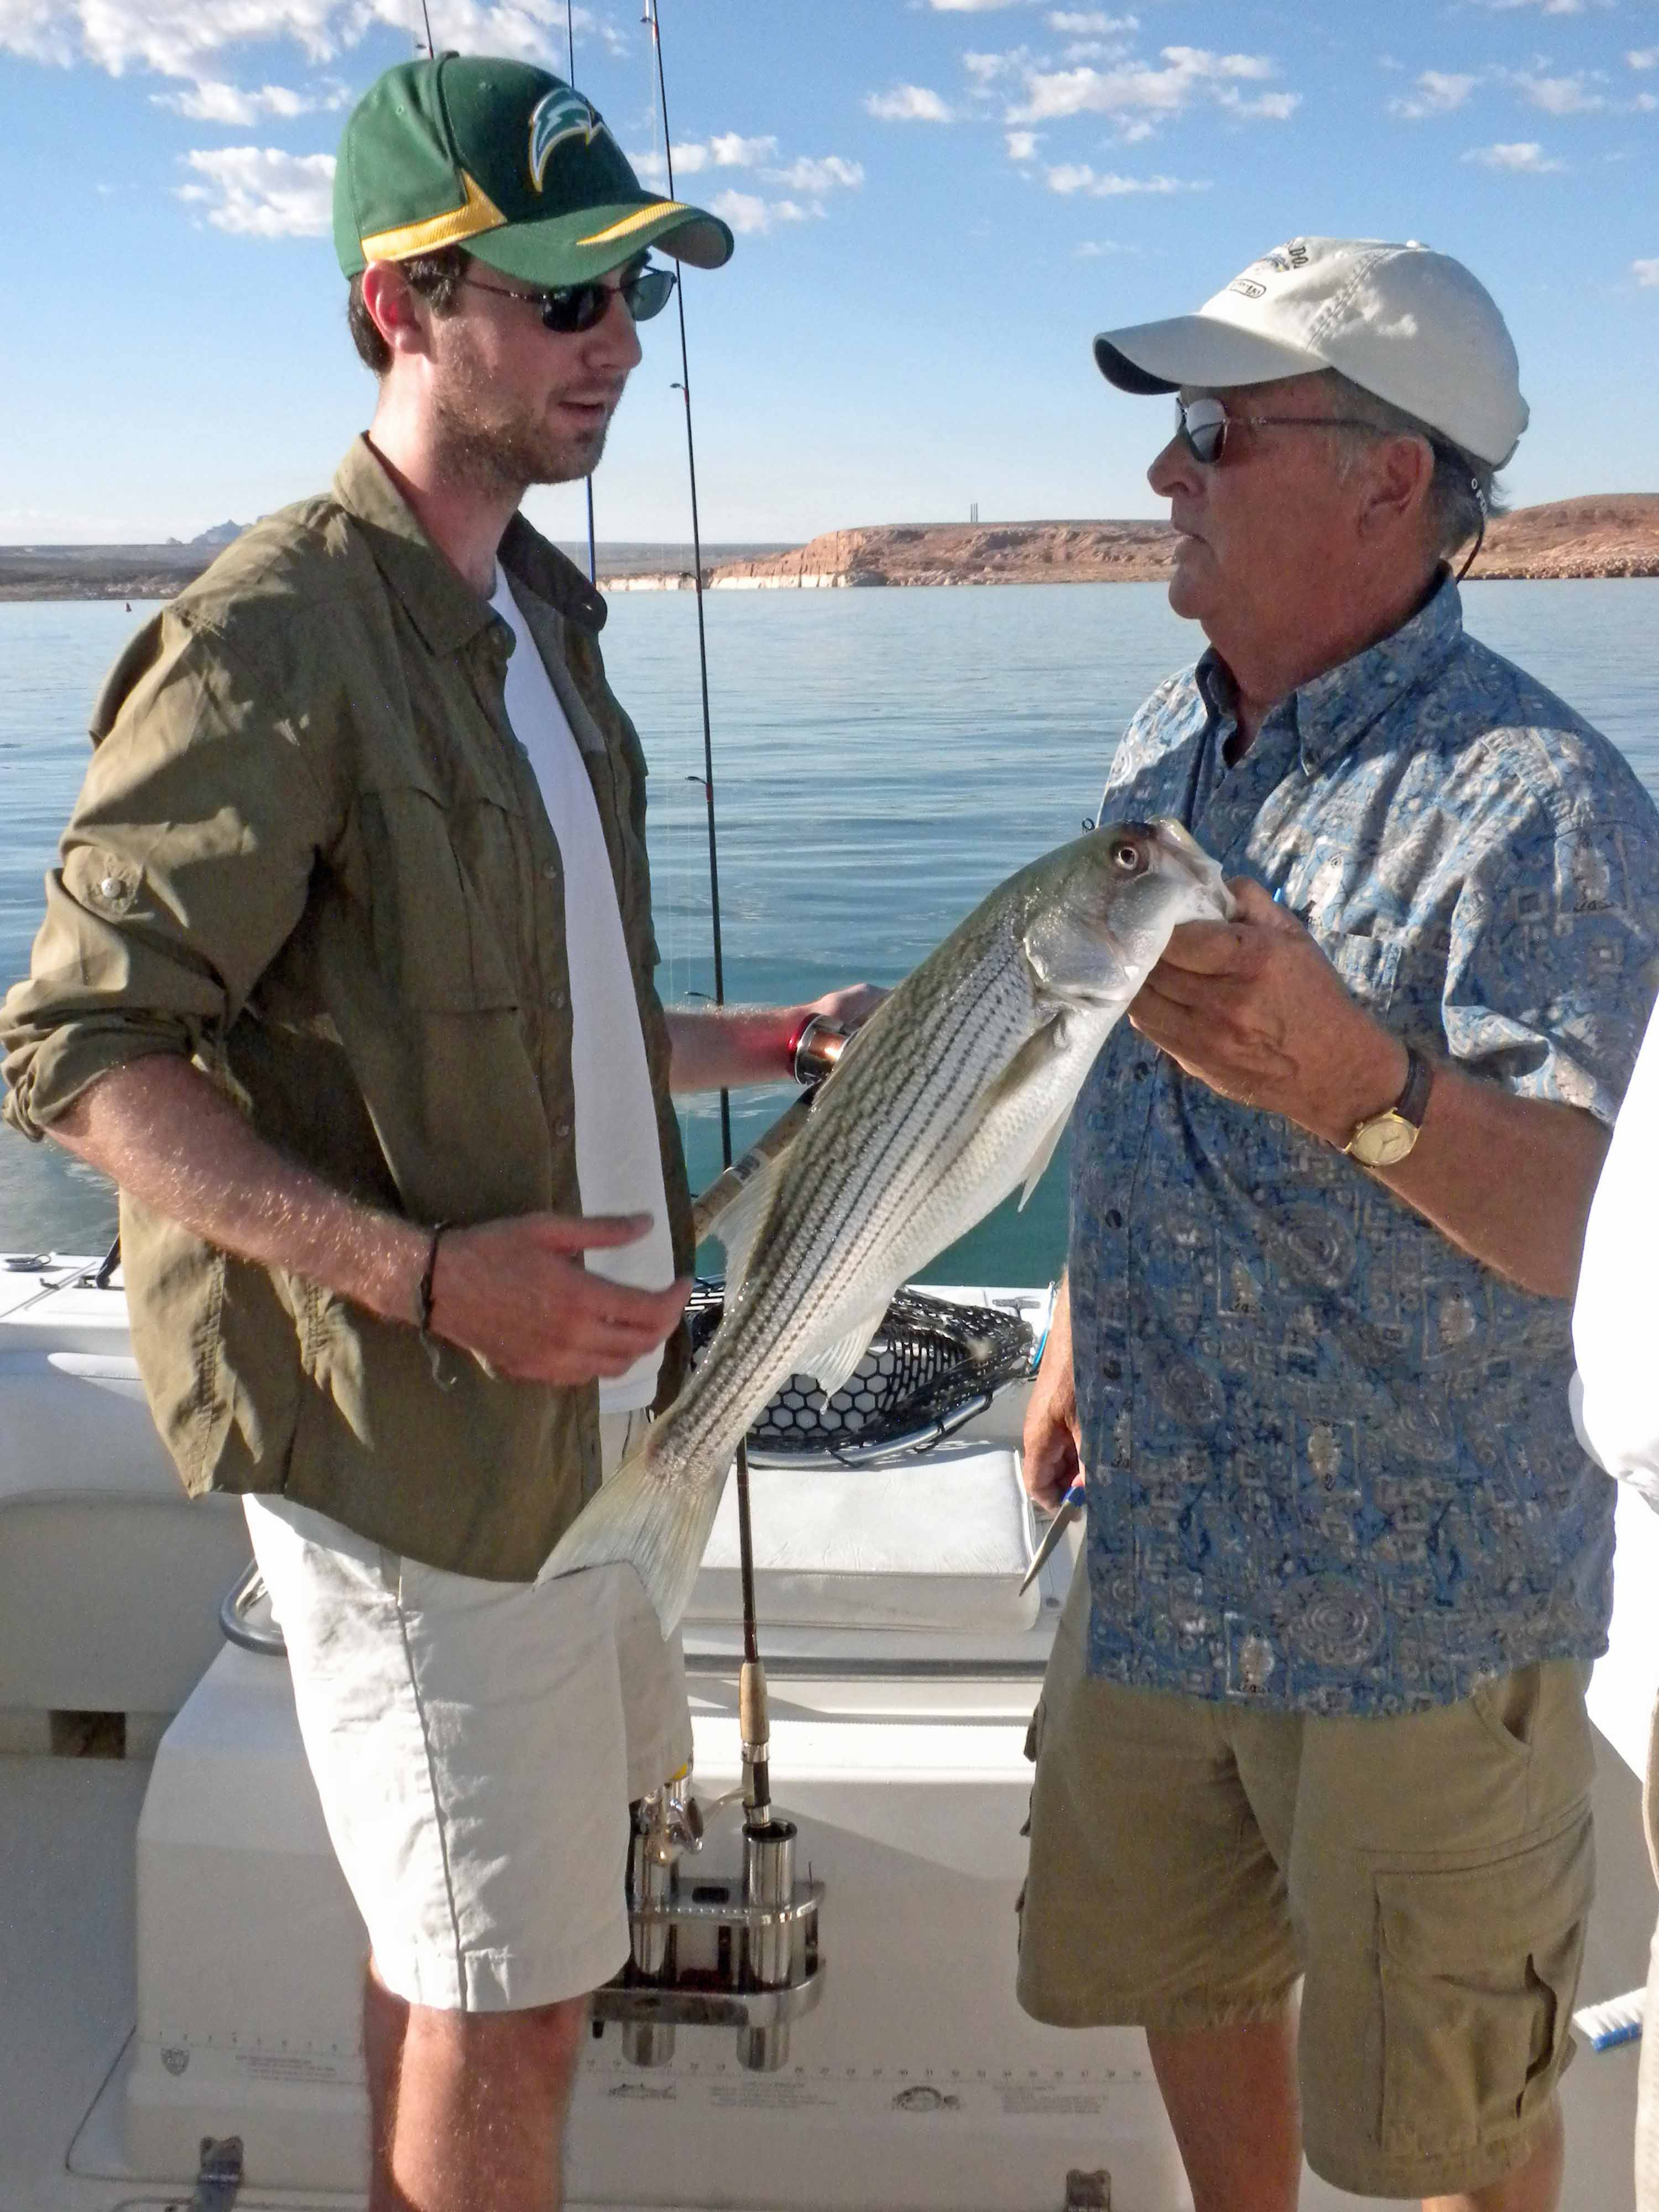 Lake powell photos from our clients who fished 7 15 10 for Lake powell fishing